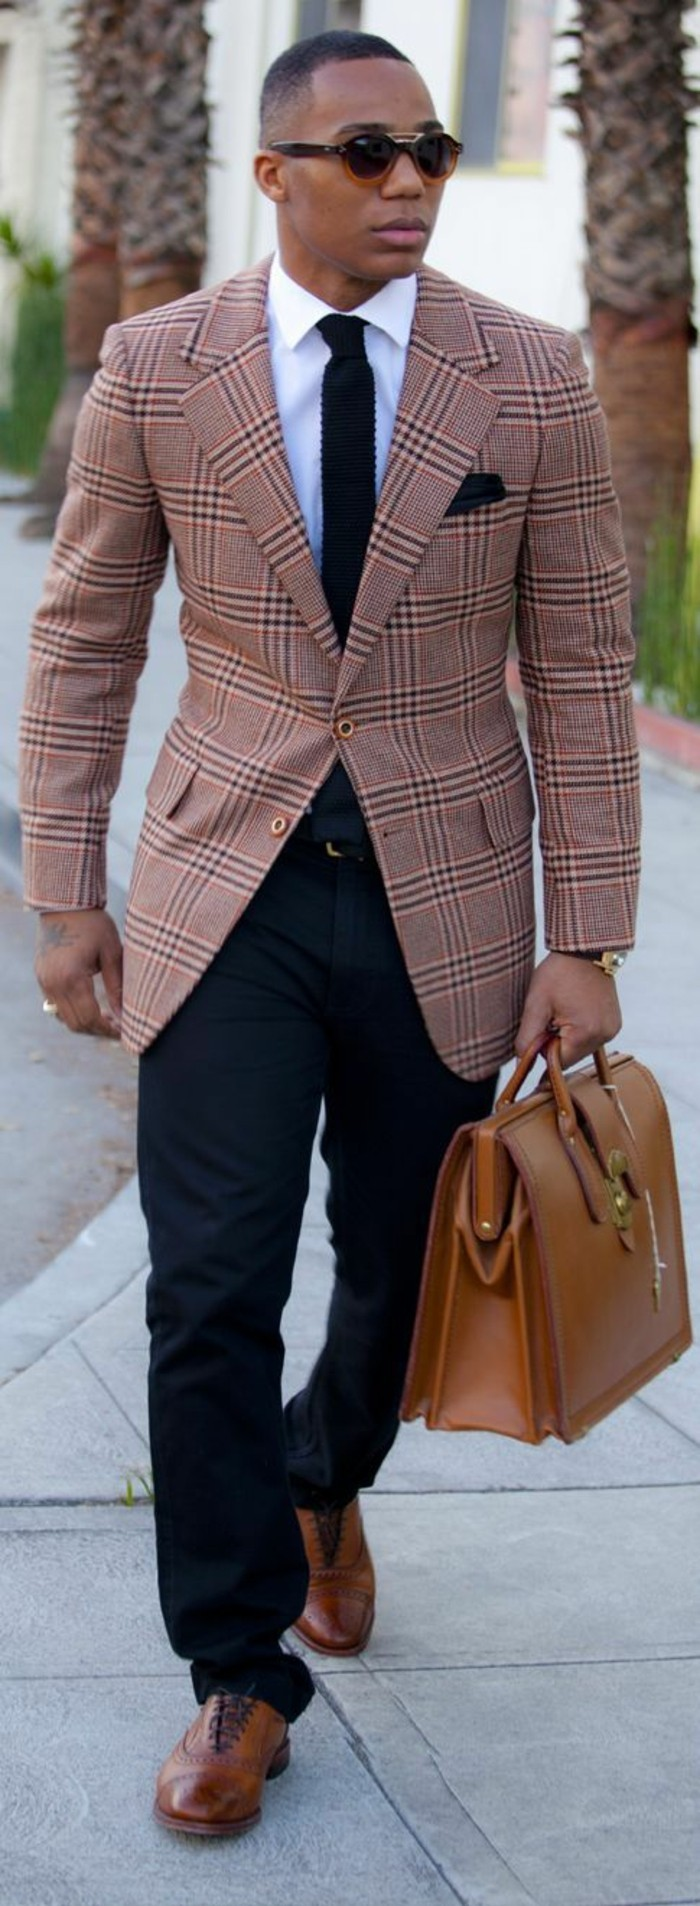 formidable-sac-homme-cuir-sacoche-longchamp-veste-carreau